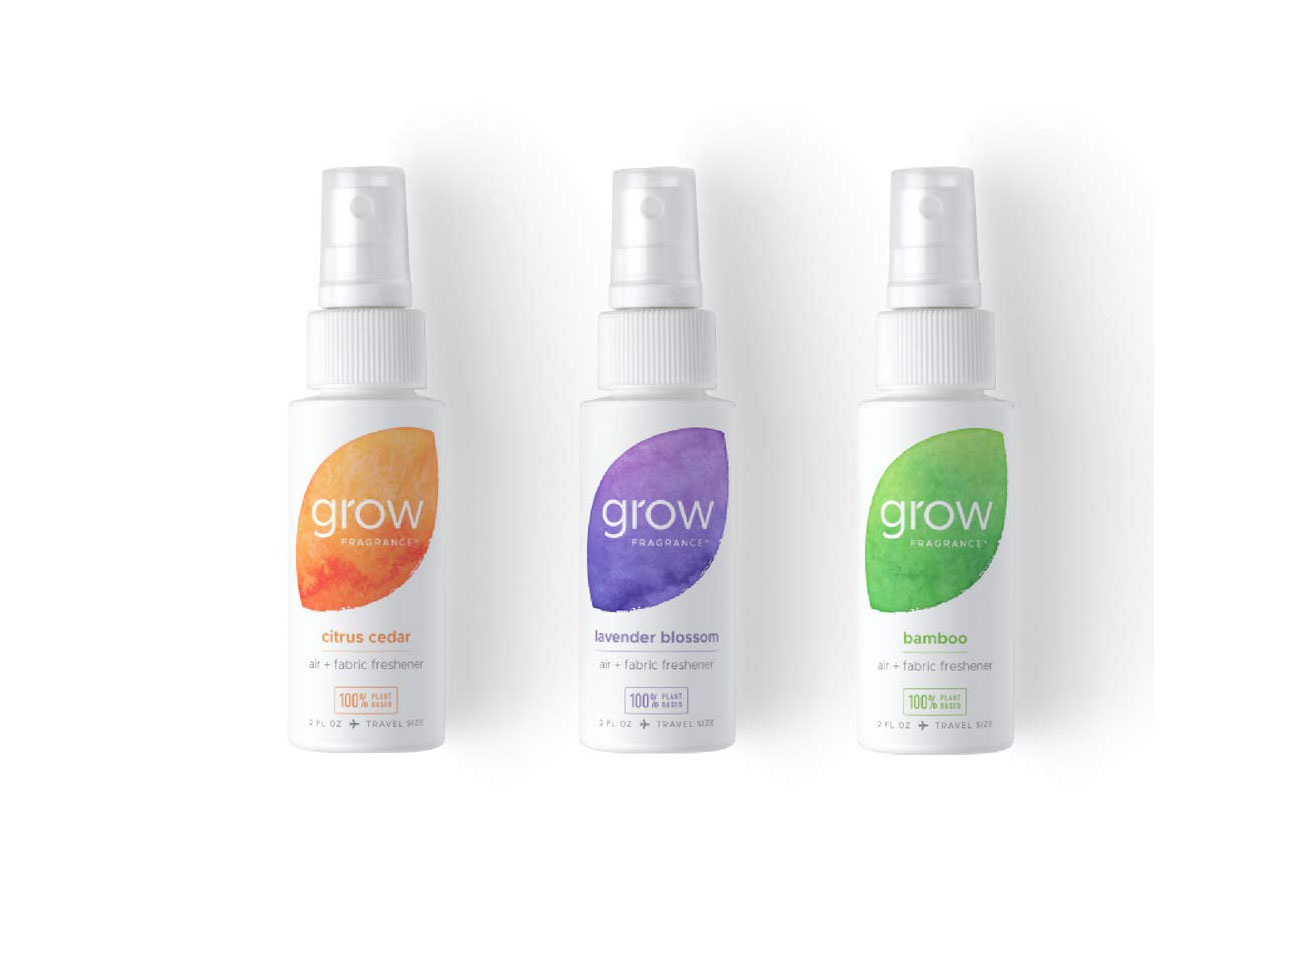 Grow Fragrance Plant-Based Fabric Freshener Travel Spray